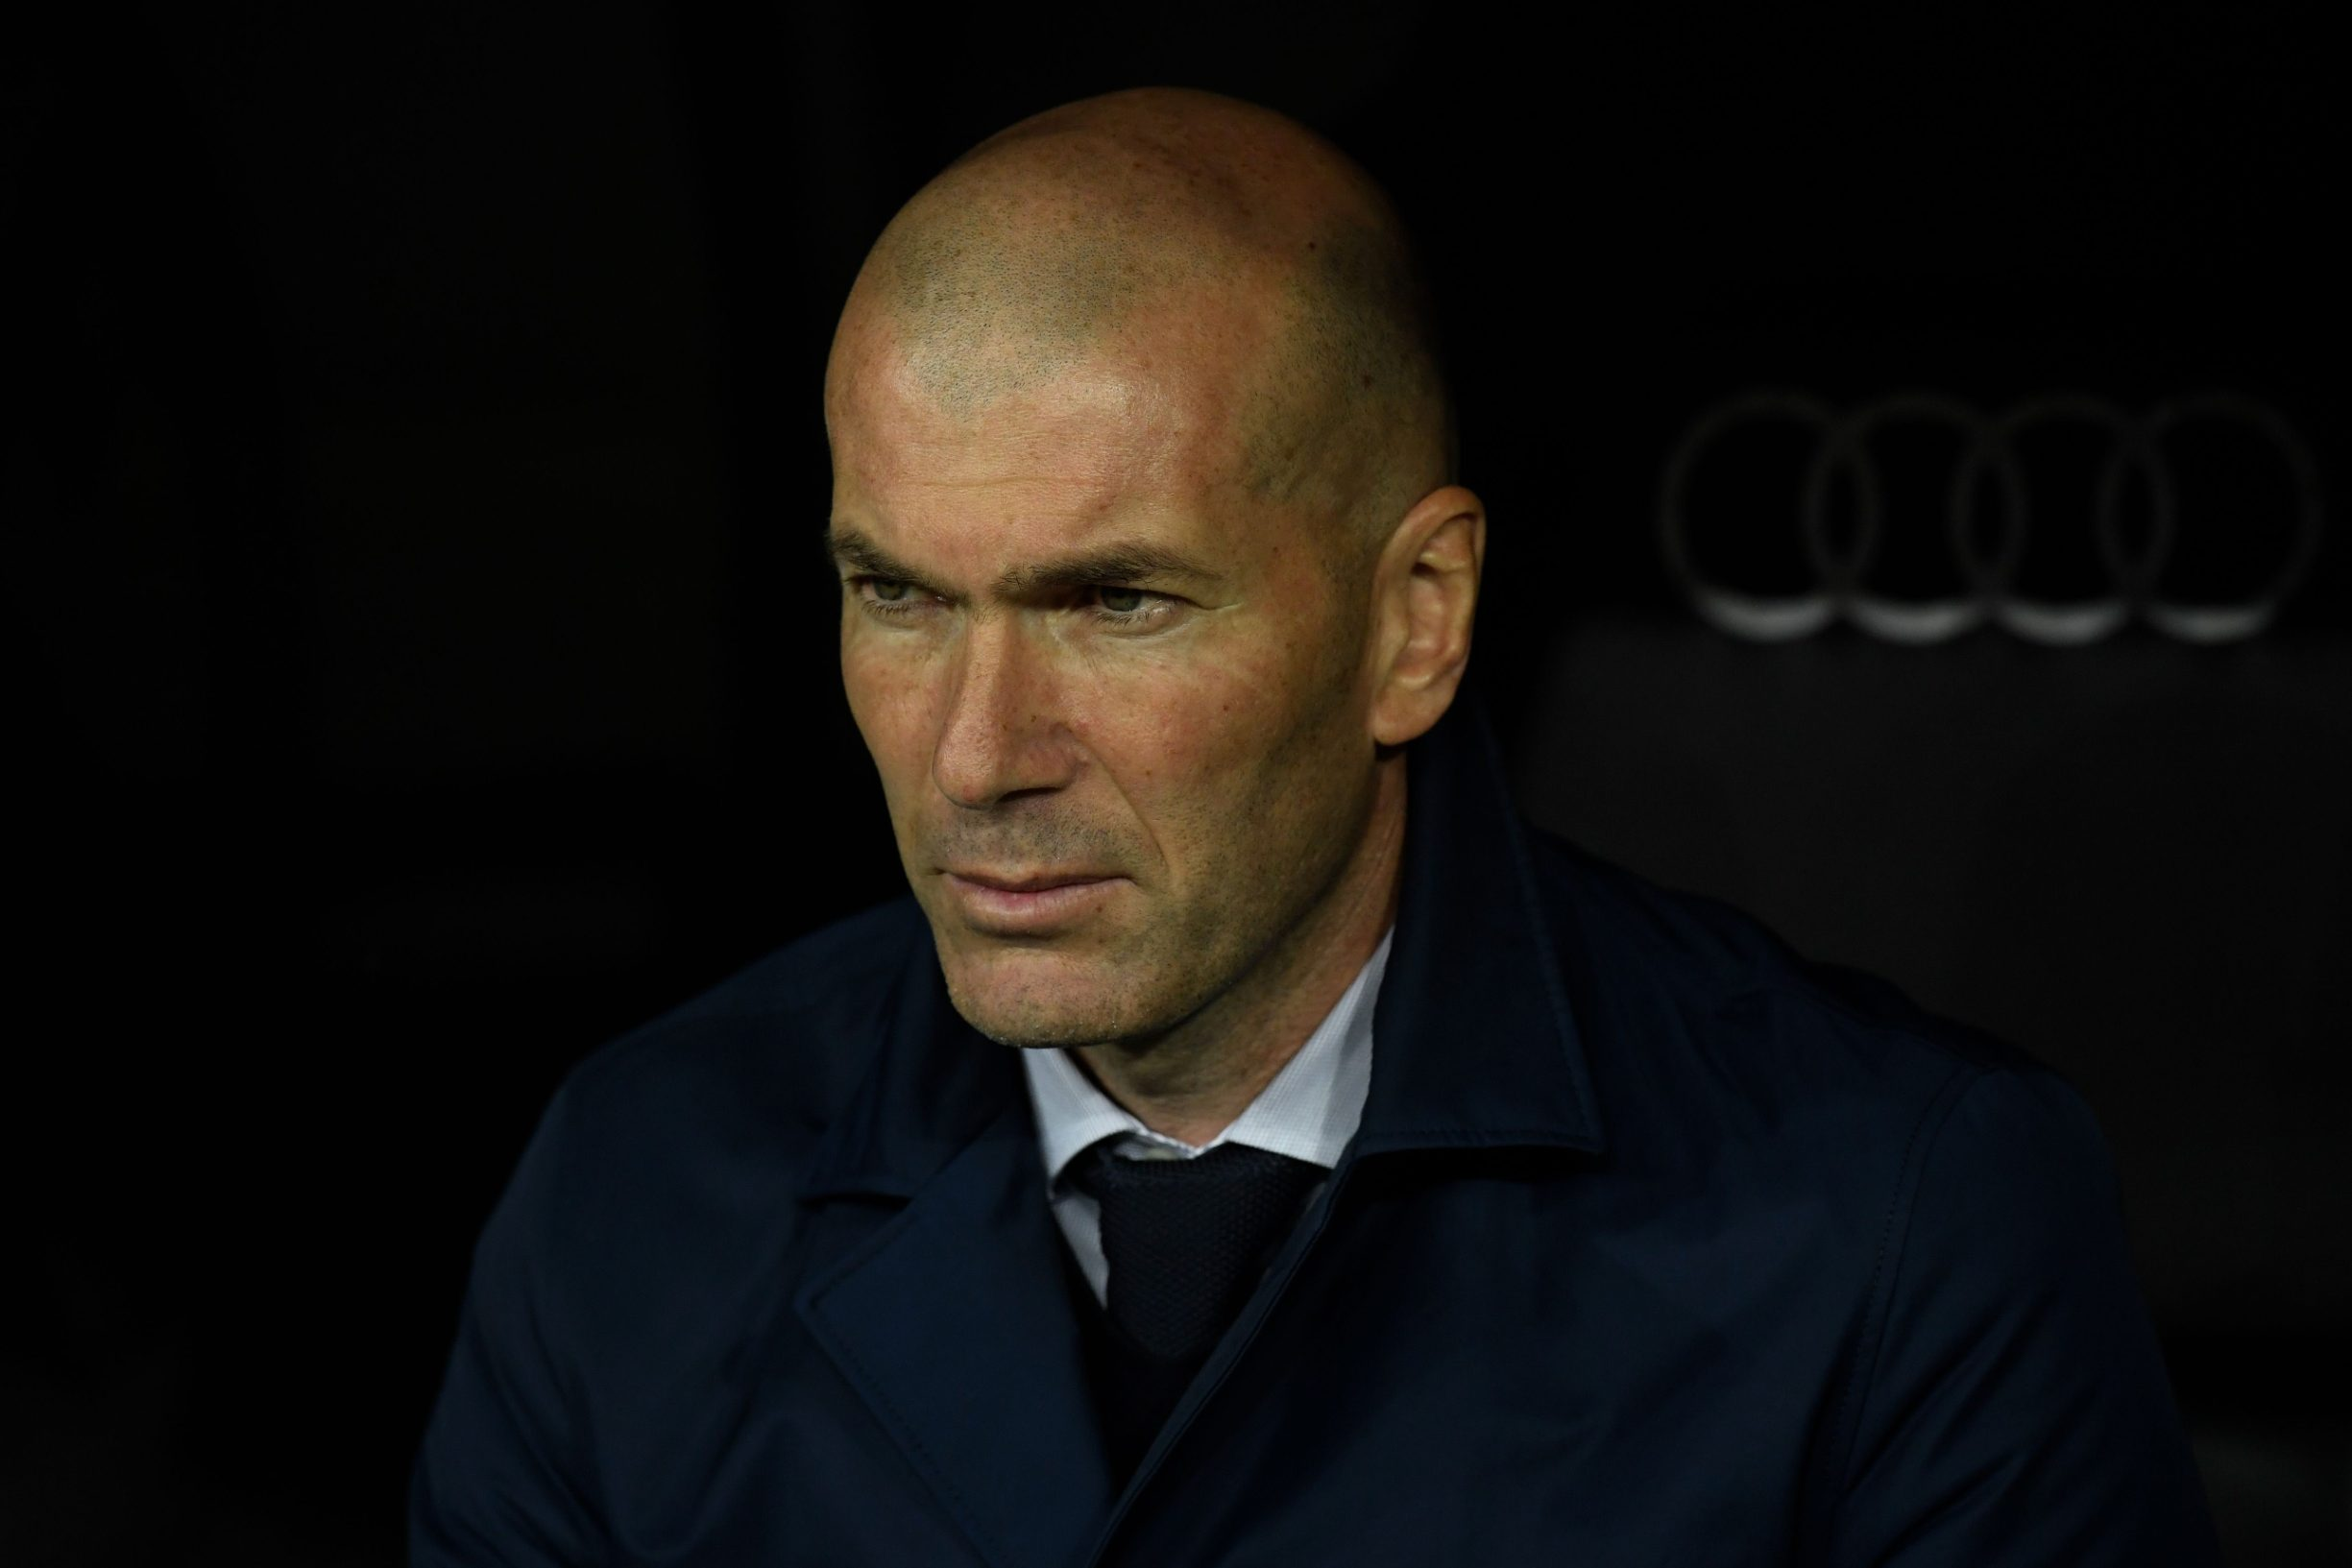 Real Madrid's French coach Zinedine Zidane waits for the start of the Spanish League football match between Real Madrid and Barcelona at the Santiago Bernabeu stadium in Madrid on March 1, 2020. (Photo by OSCAR DEL POZO / AFP)